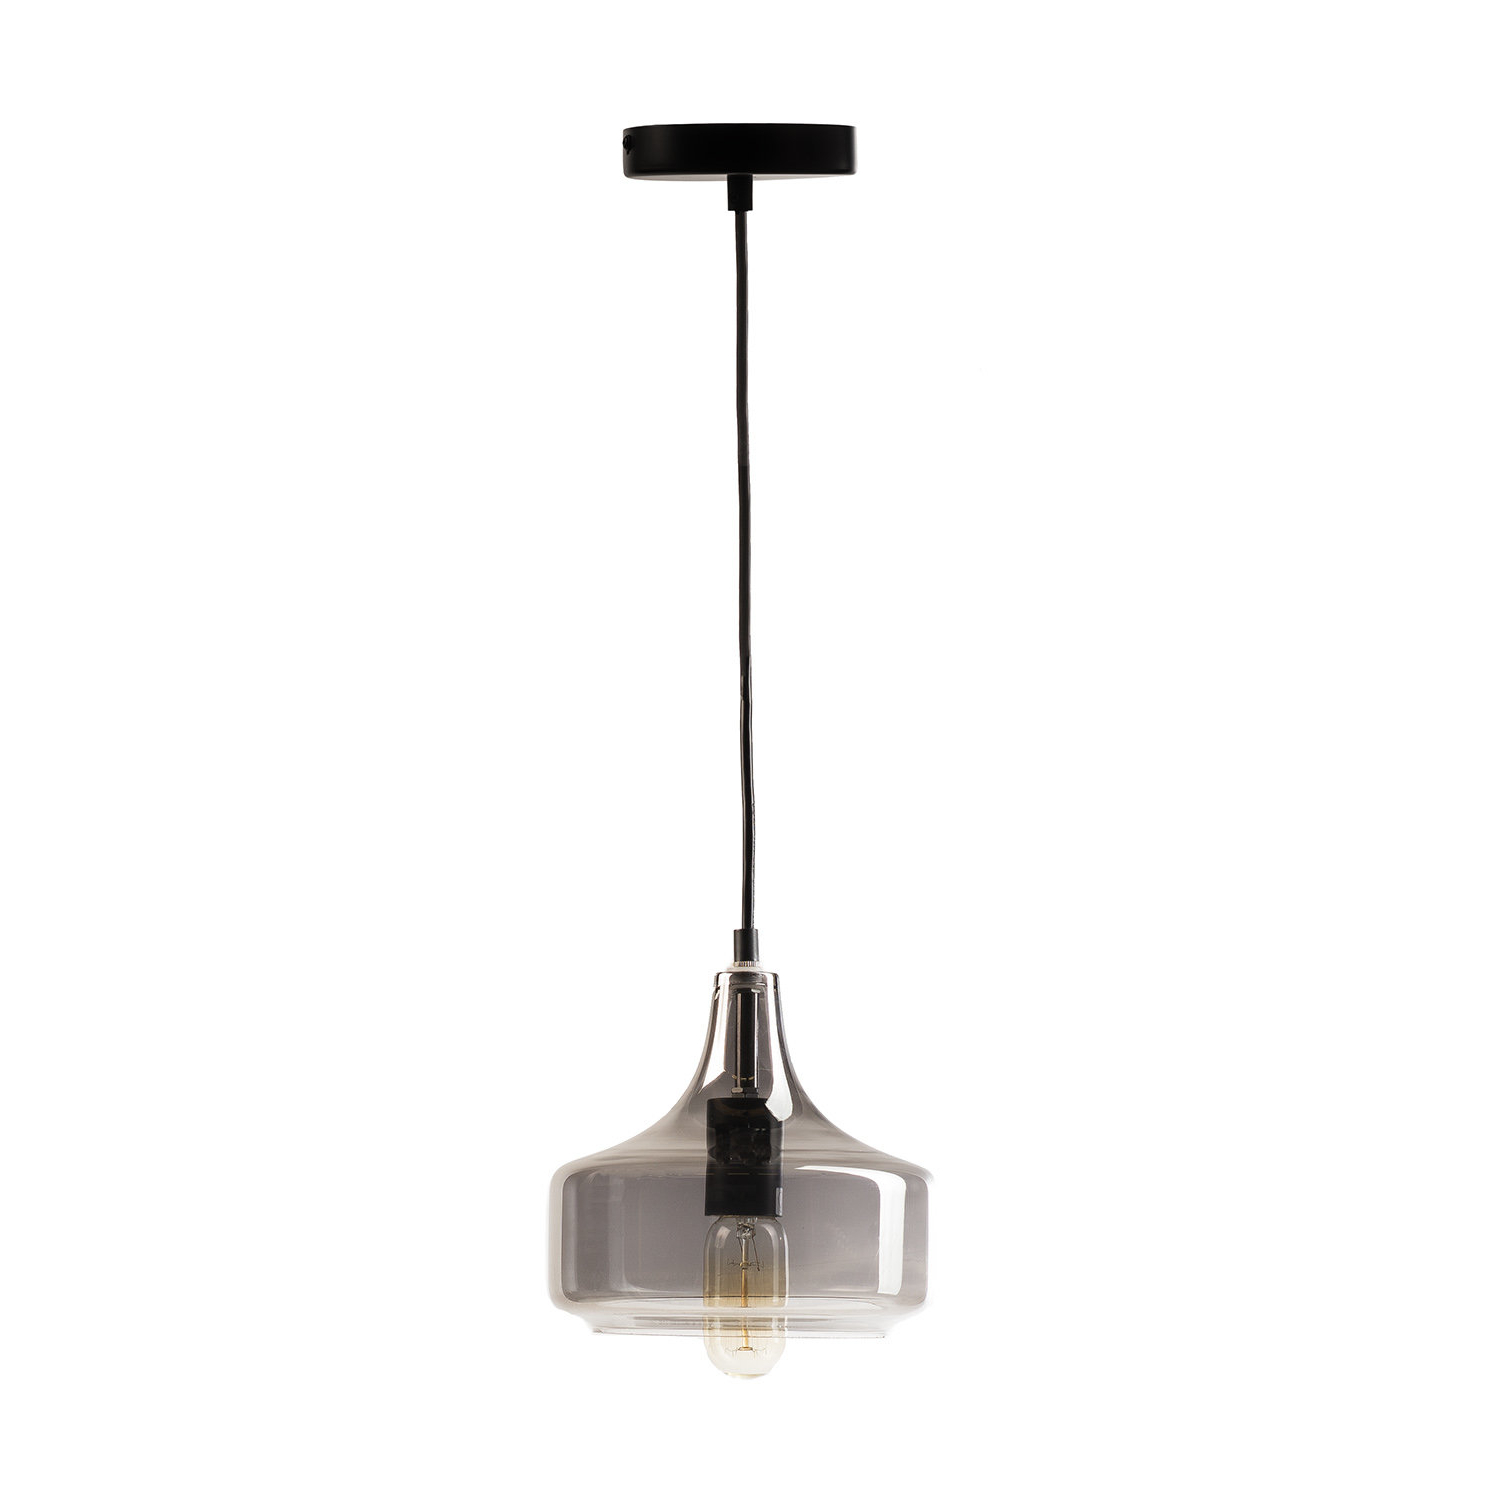 Popular Didomenico Vintage 1 Light Single Bell Pendant For Roslindale 1 Light Single Bell Pendants (Gallery 13 of 20)